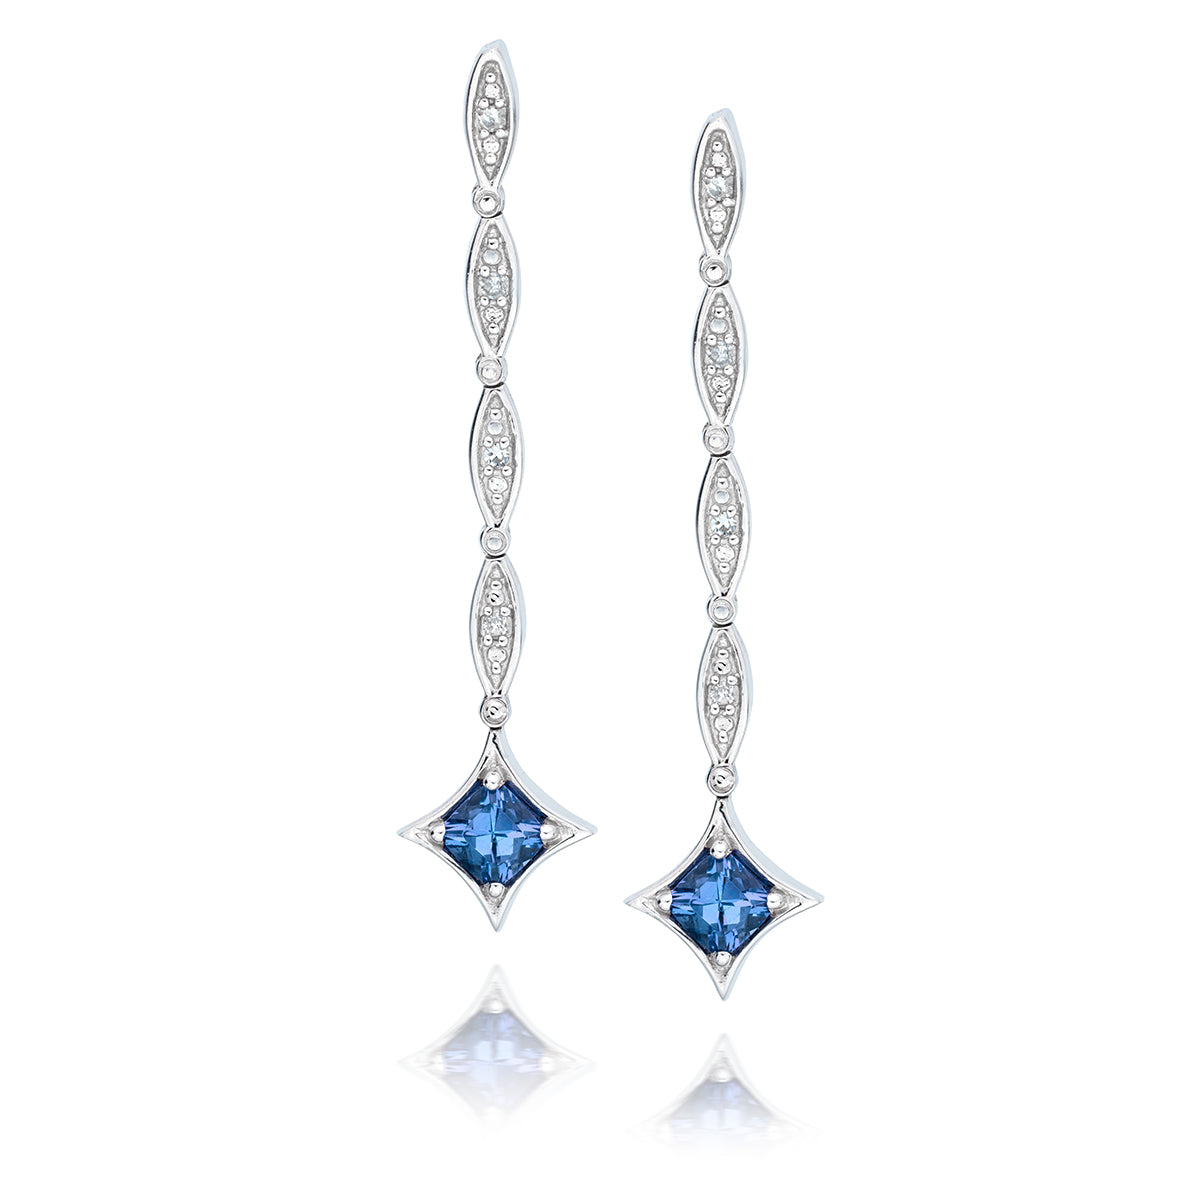 silver accessories women aliexpress wedding in blue jewelry stone item sterling from fine for alibaba com tanzanite on earrings